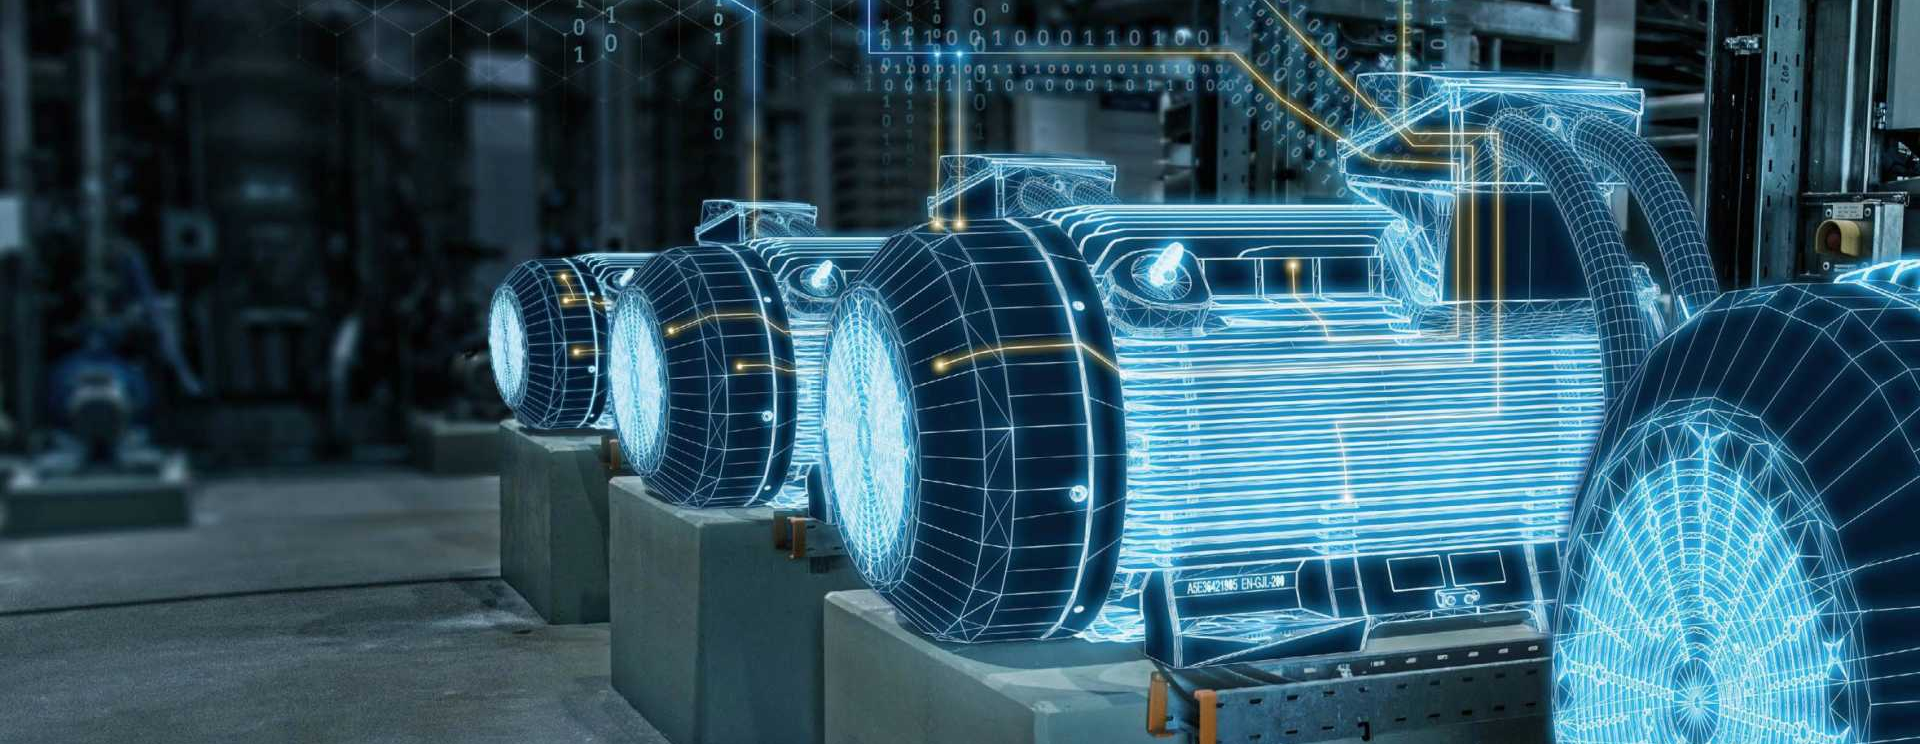 CROP - Digital Twin - Siemens' 'Mindsphere' IoT operating system can use digital twins to help optimise product development, production management and in-service performance – image courtesy of Siemens.